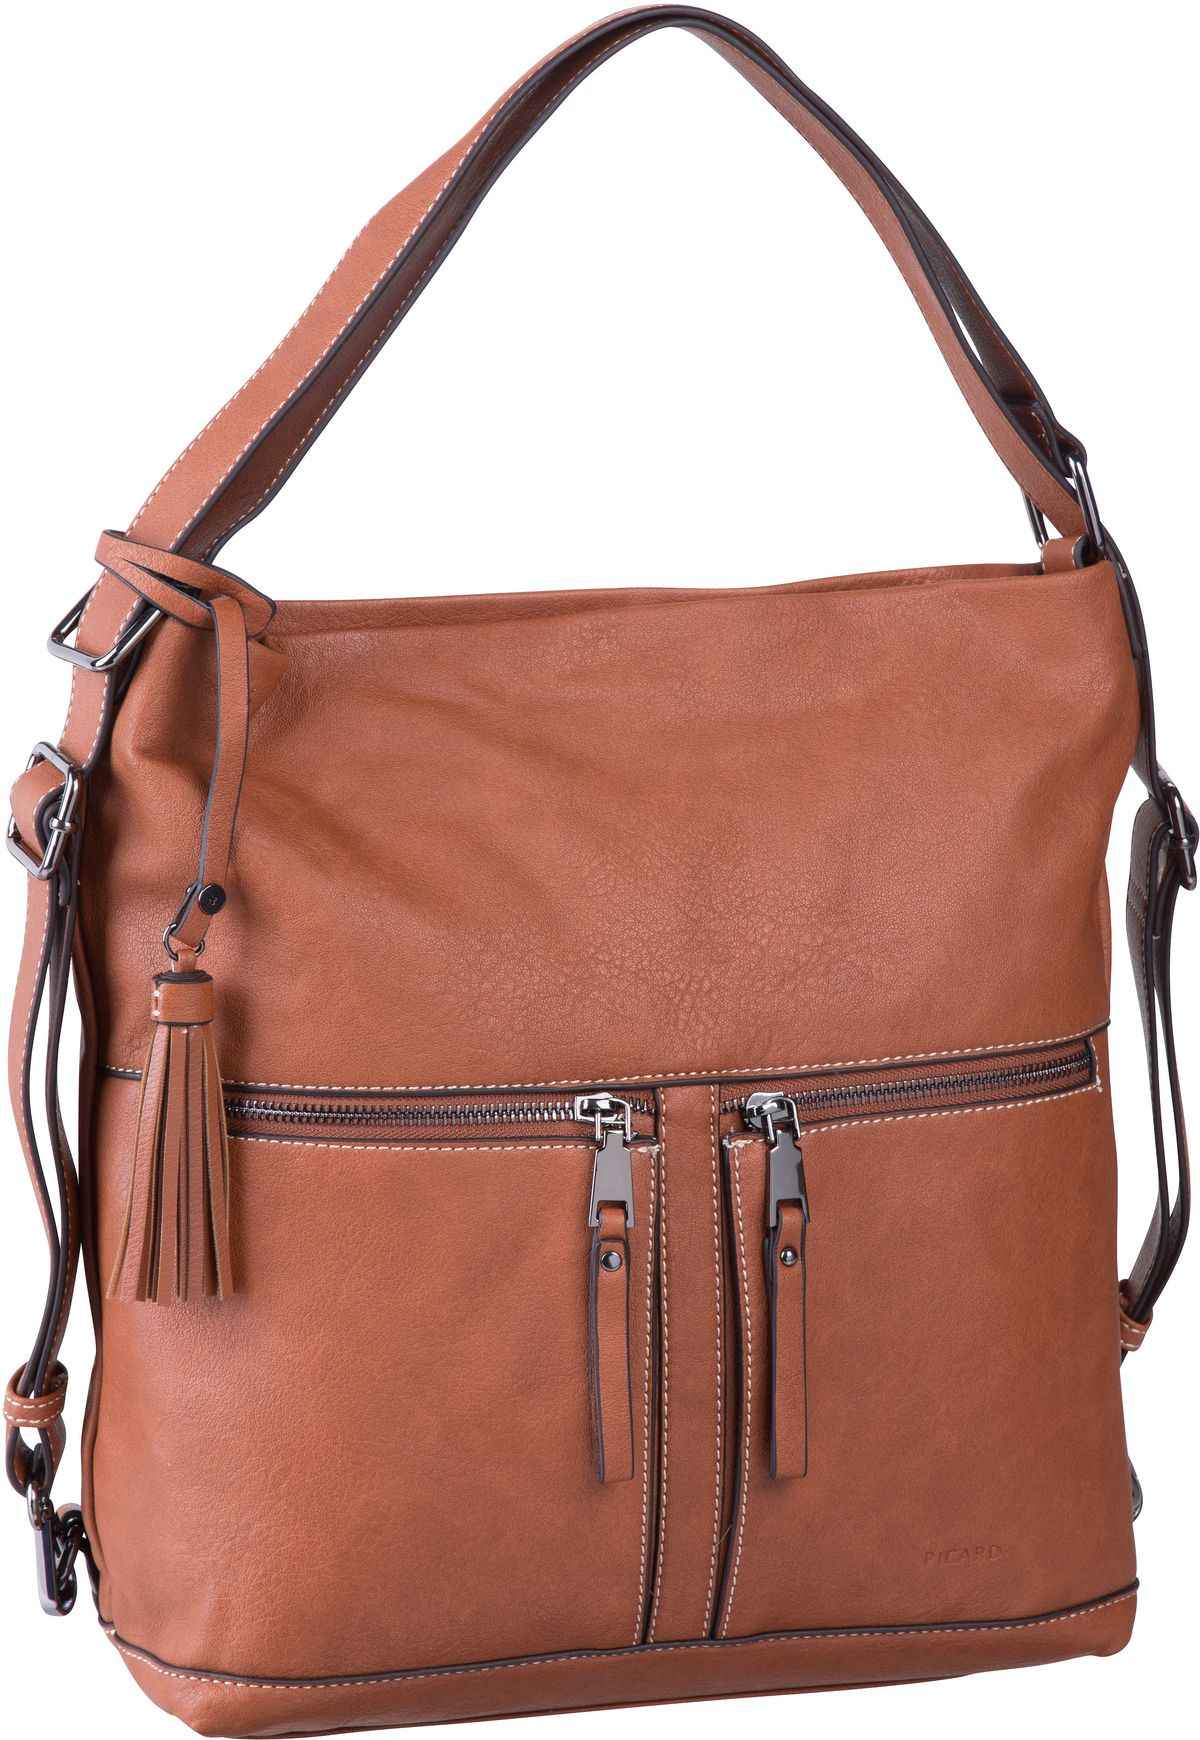 Handtasche Mellow 2745 Whisky